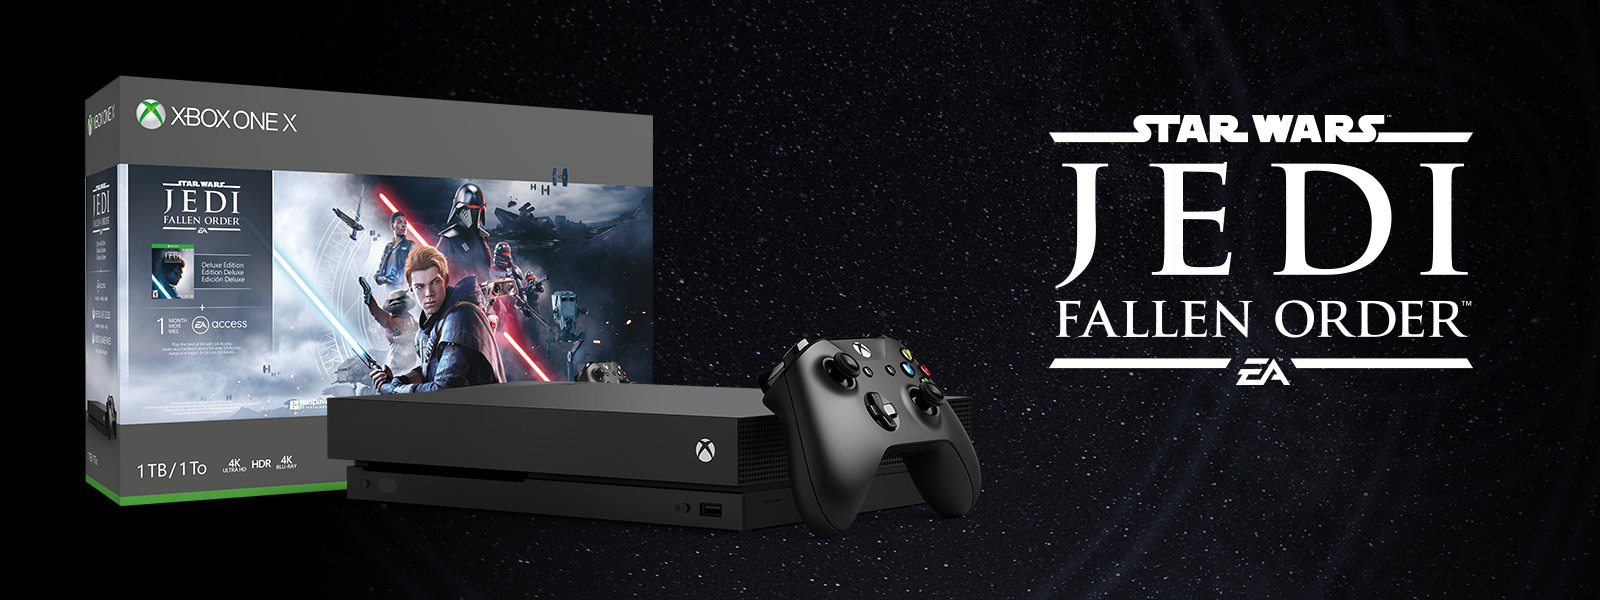 Xbox One X Star Wars Jedi: Fallen Order bundle art in front of a starry night sky